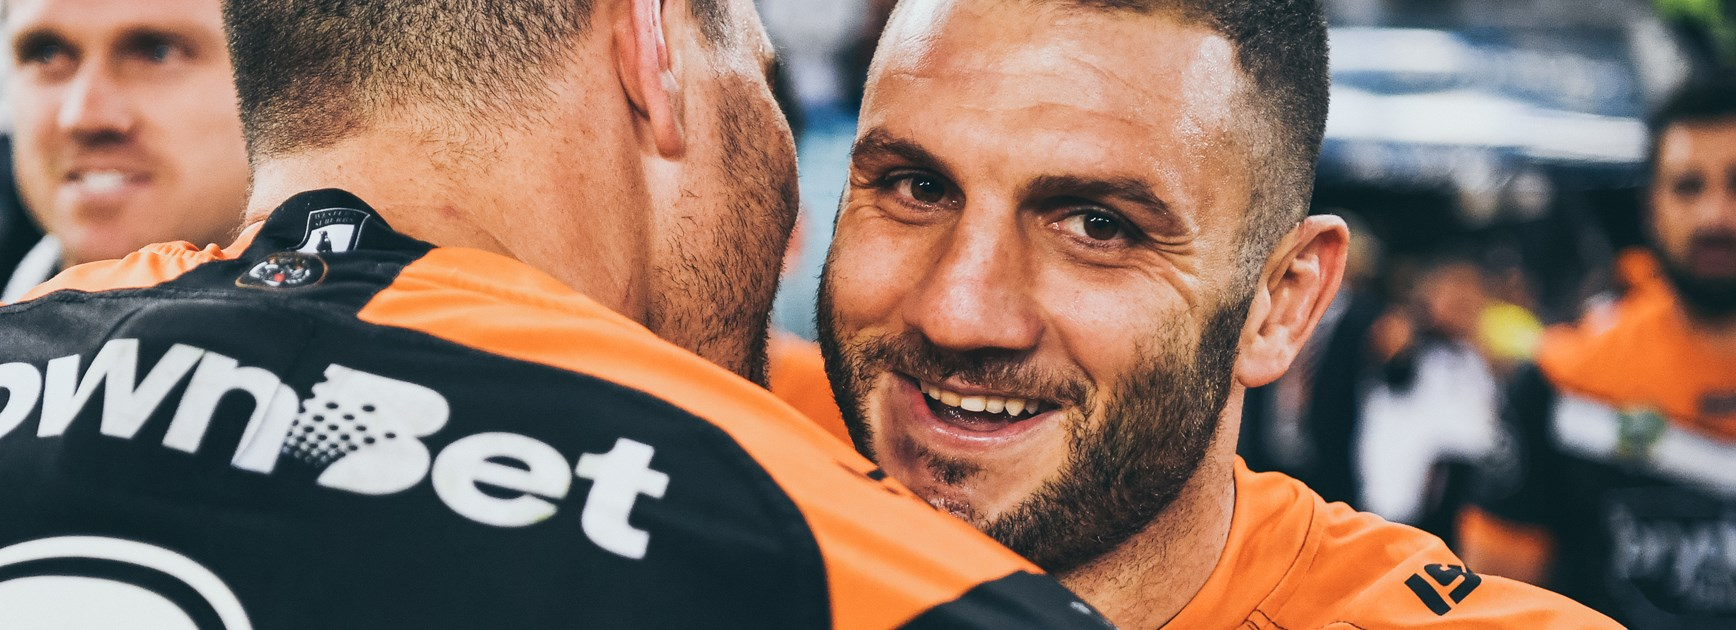 Farah indicates 2019 will be his last season